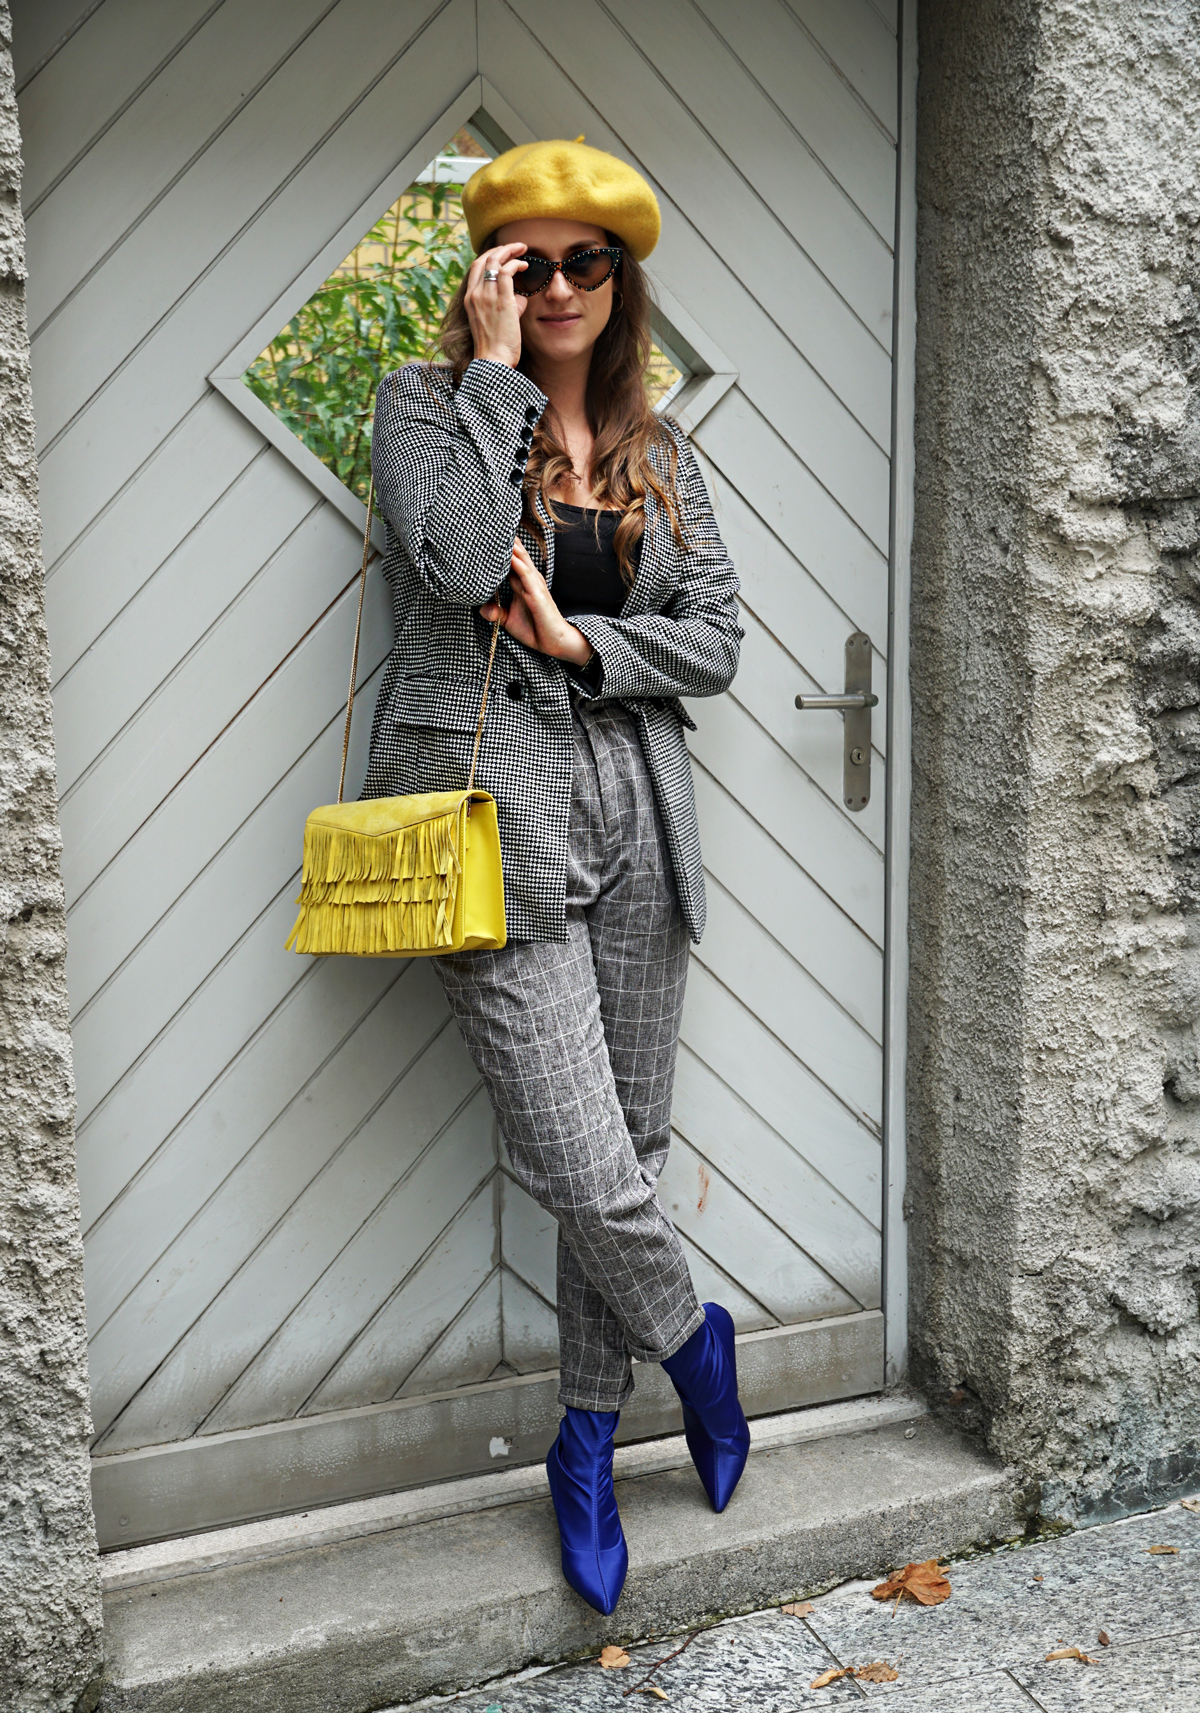 Checked pattern all-over-look with checked pants, checked blazer and a yellow bag with a yellow hat and blue boots.